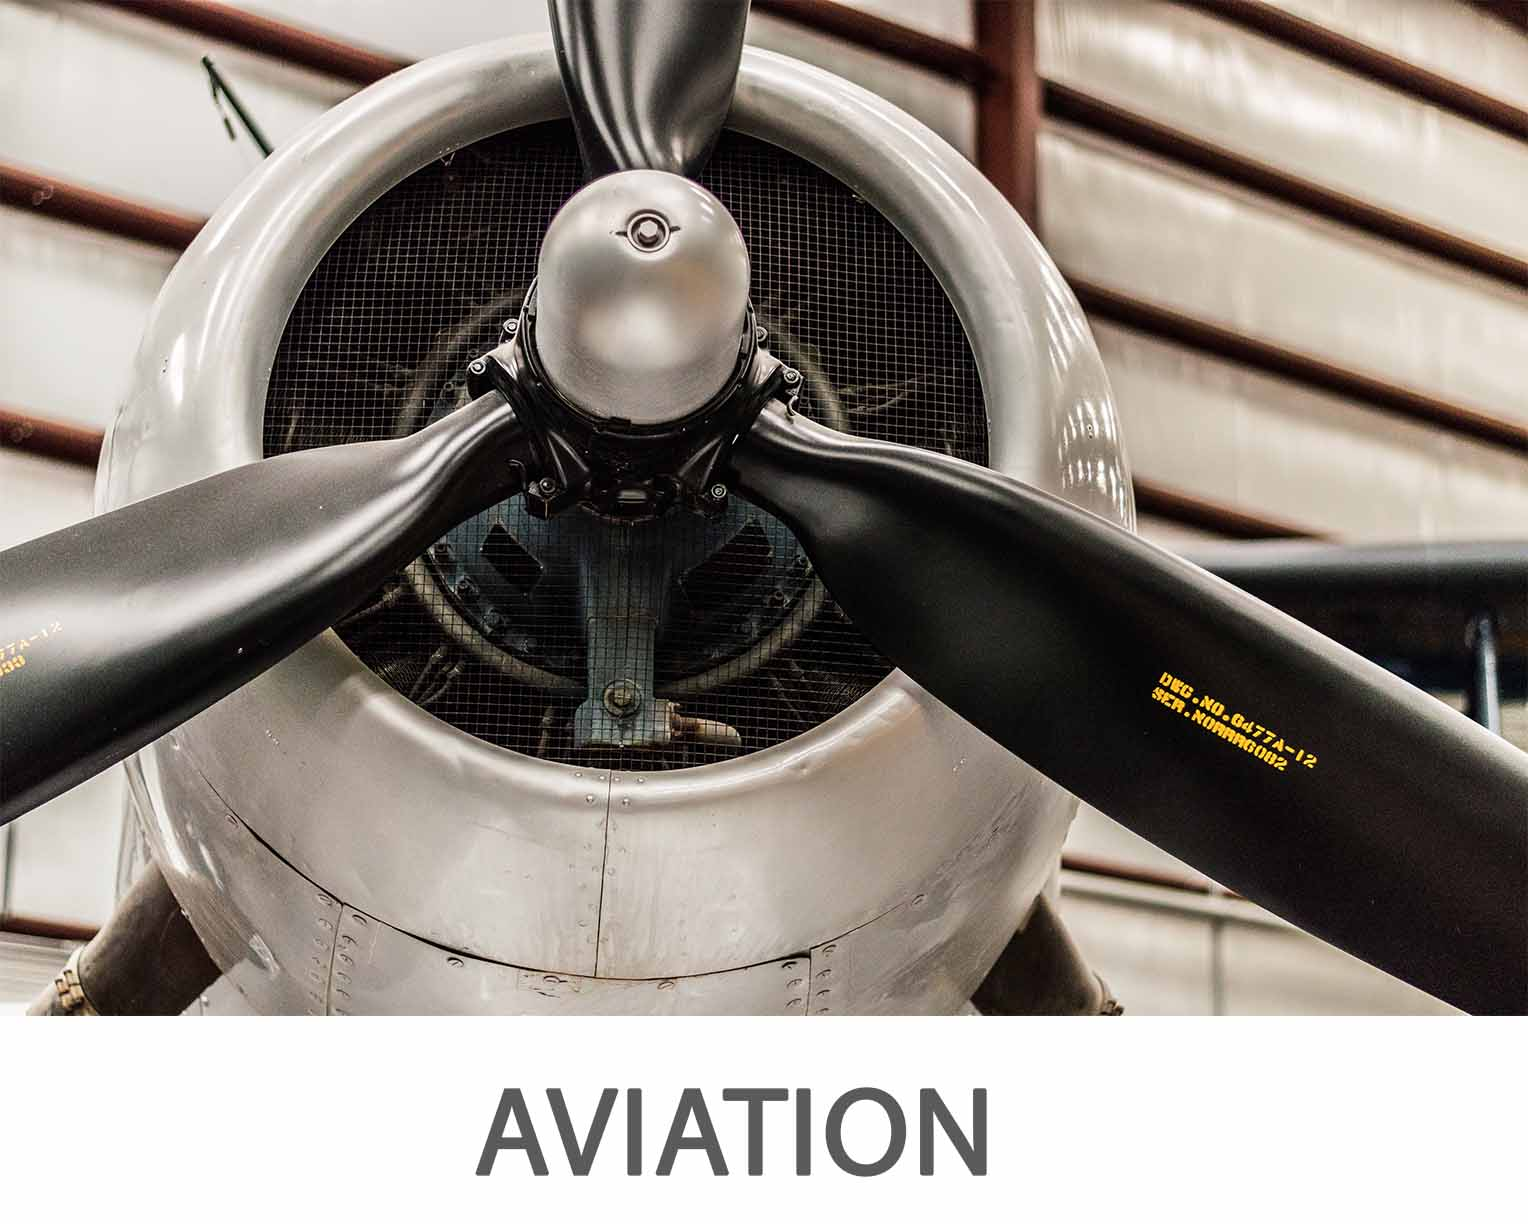 Parts for Aviation industry